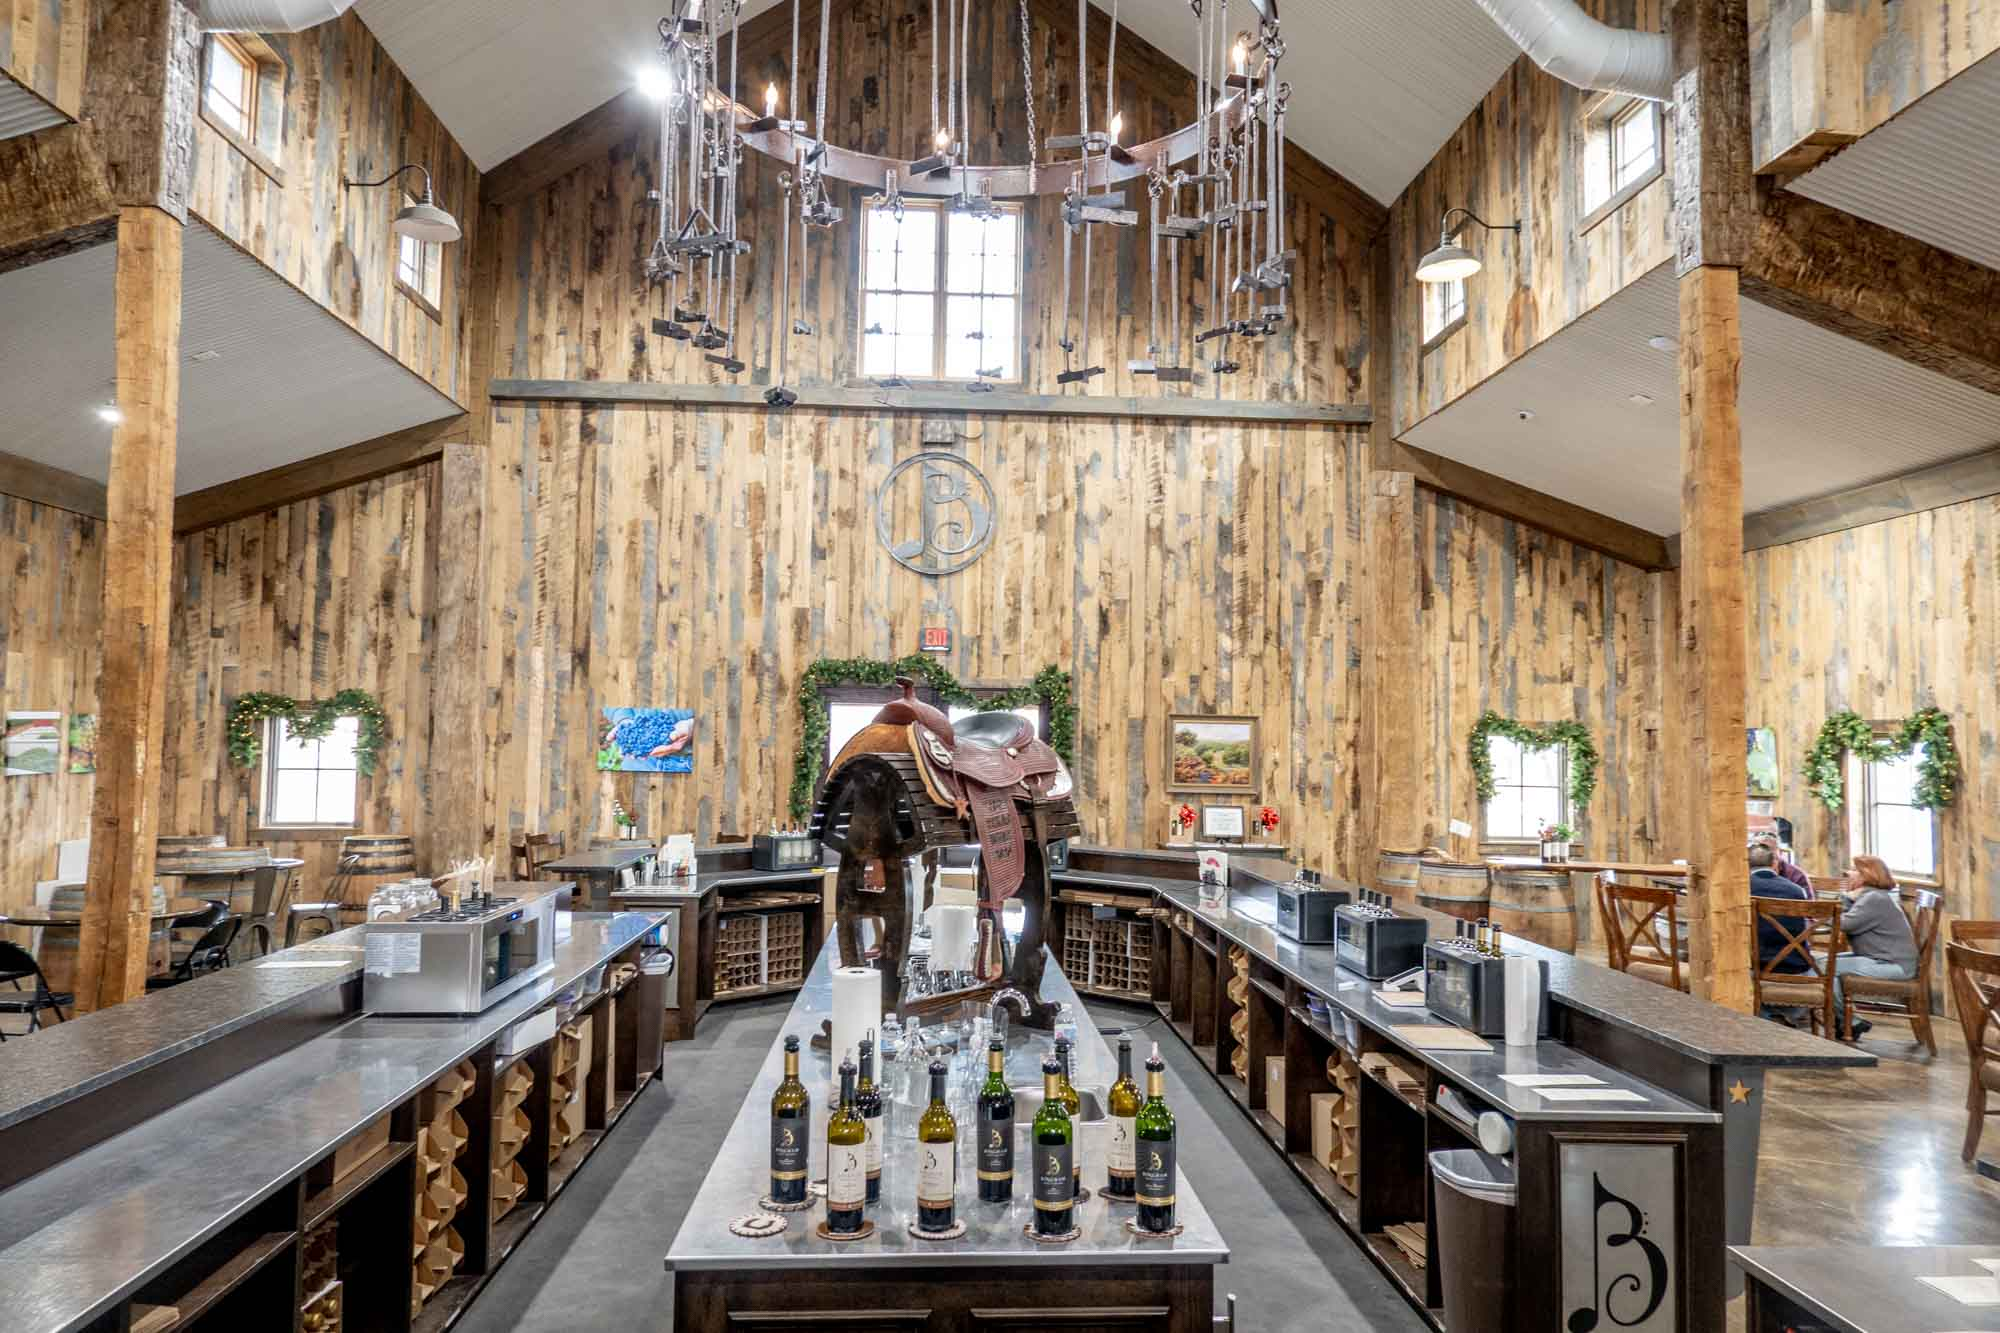 Large room with wood paneling and a bar for wine tasting at the center